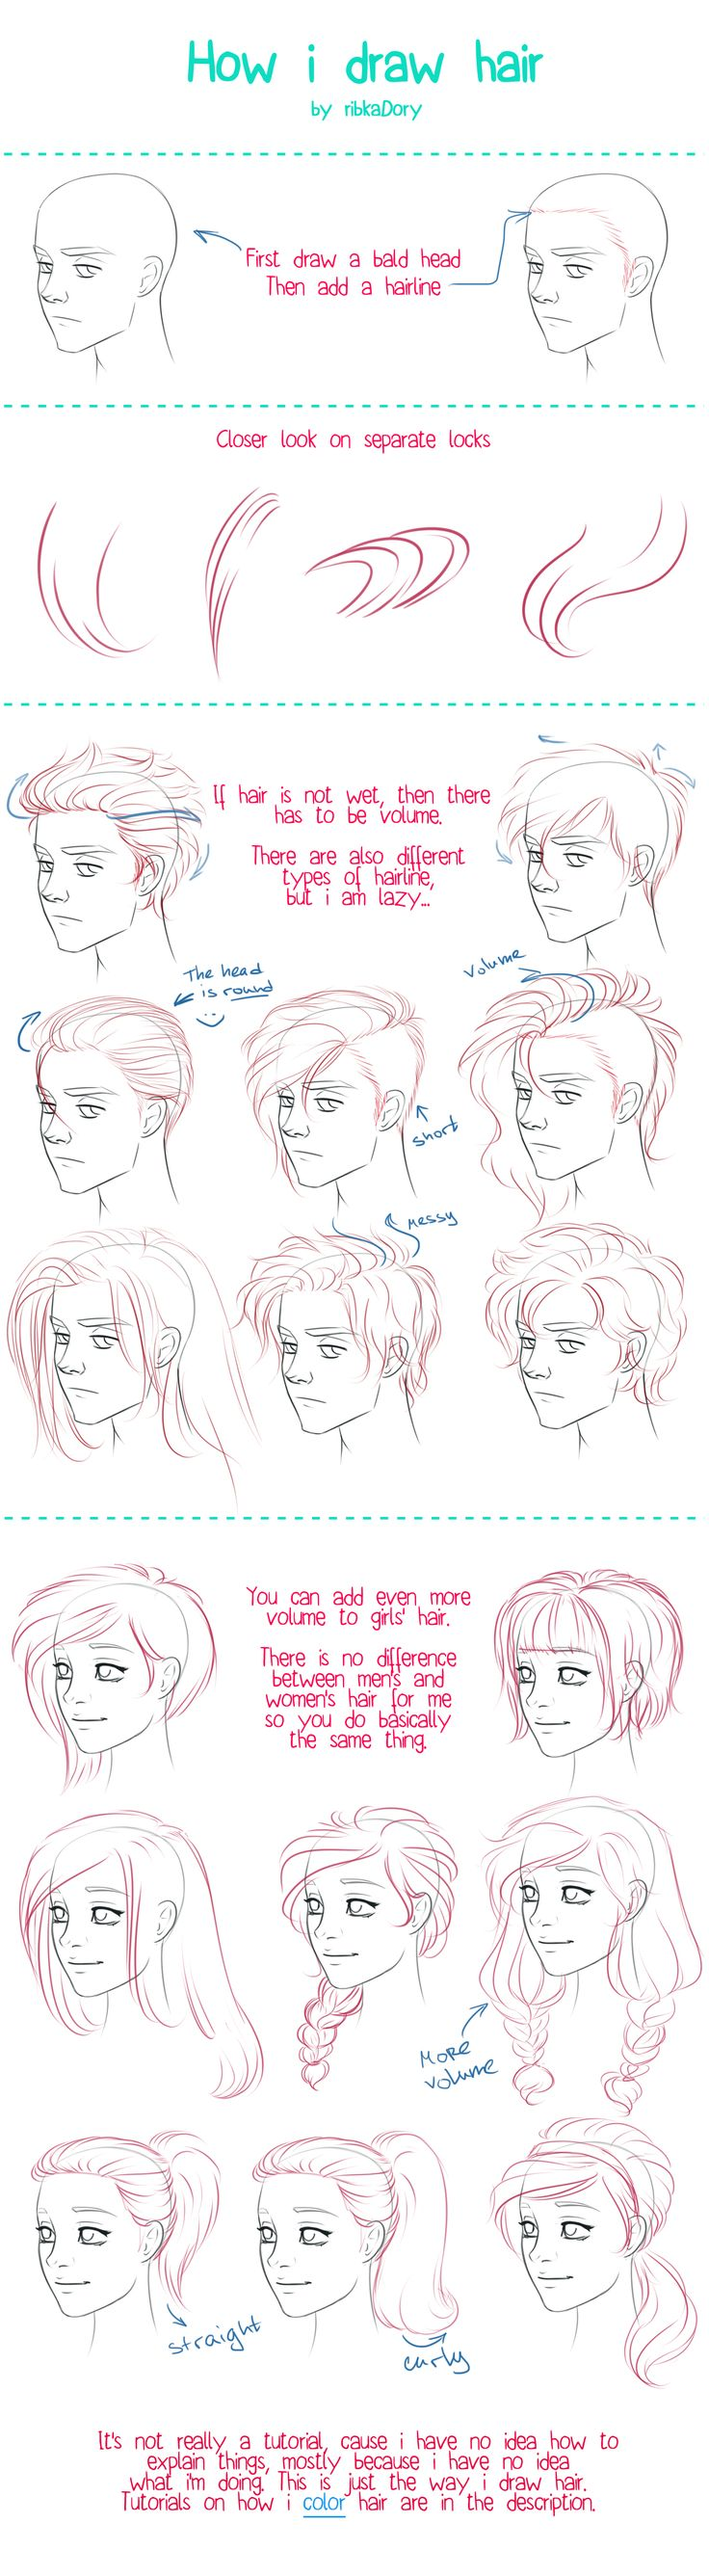 How To Draw Hair Tutorial By =ribkadory On Deviantart: By Drawing The Ends  And